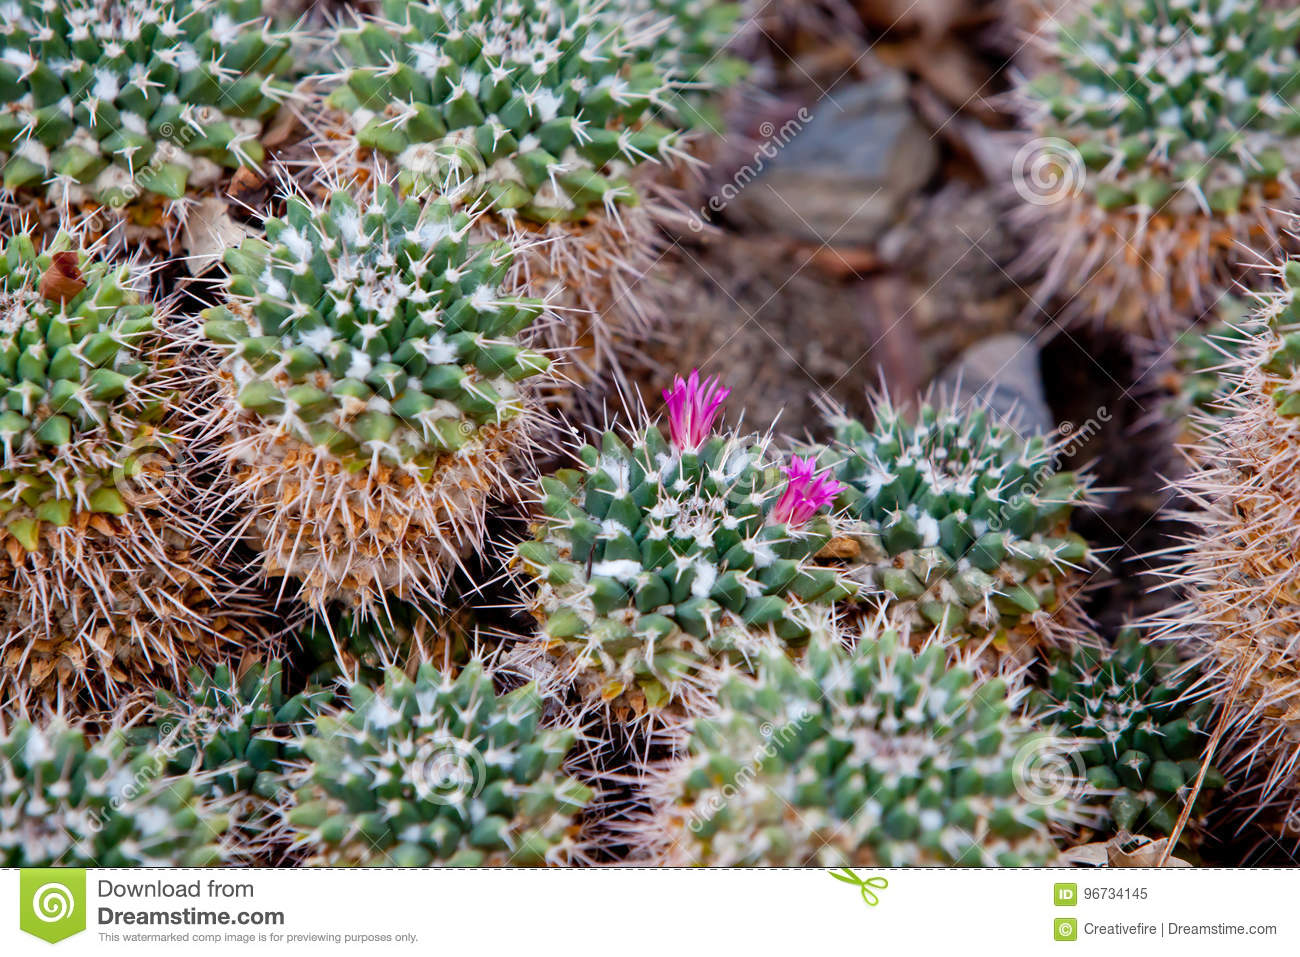 Small spikey cactus plant with tiny pink flowers stock image image download small spikey cactus plant with tiny pink flowers stock image image of horizontal mightylinksfo